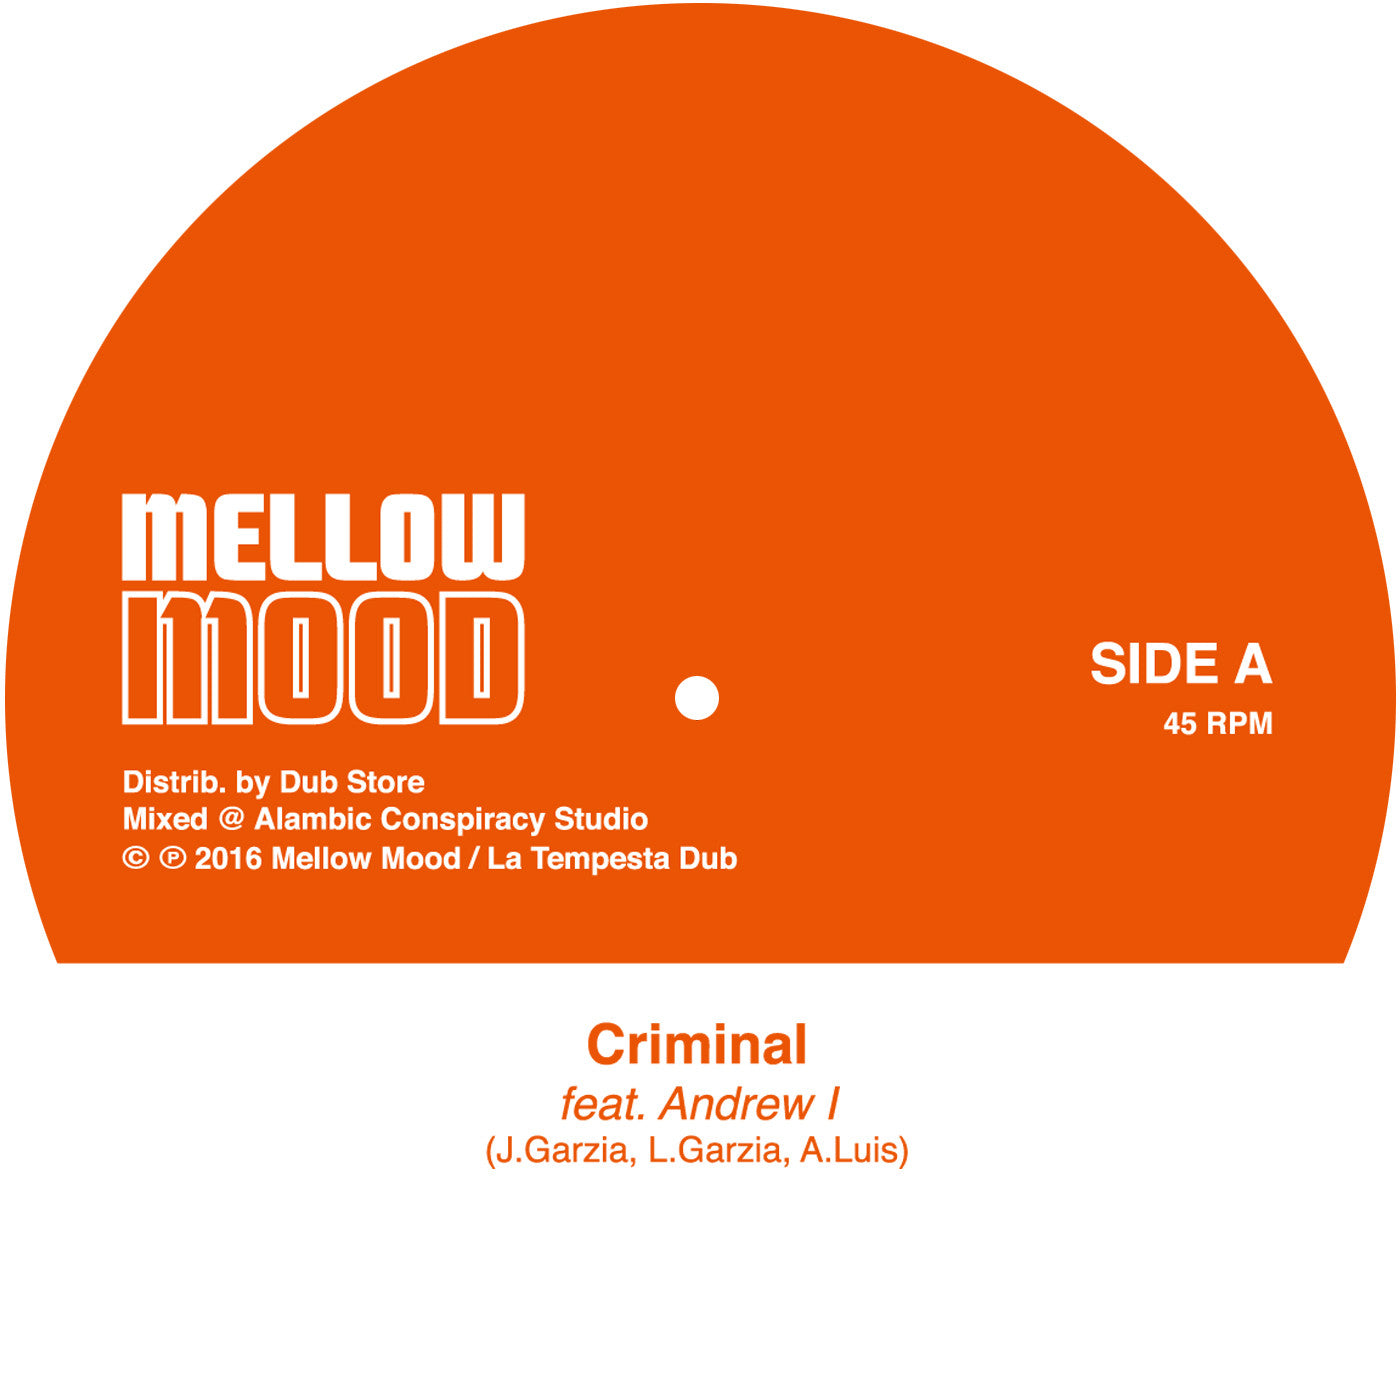 "Mellow Mood feat. Andrew I - Criminal [7"" Vinyl]"